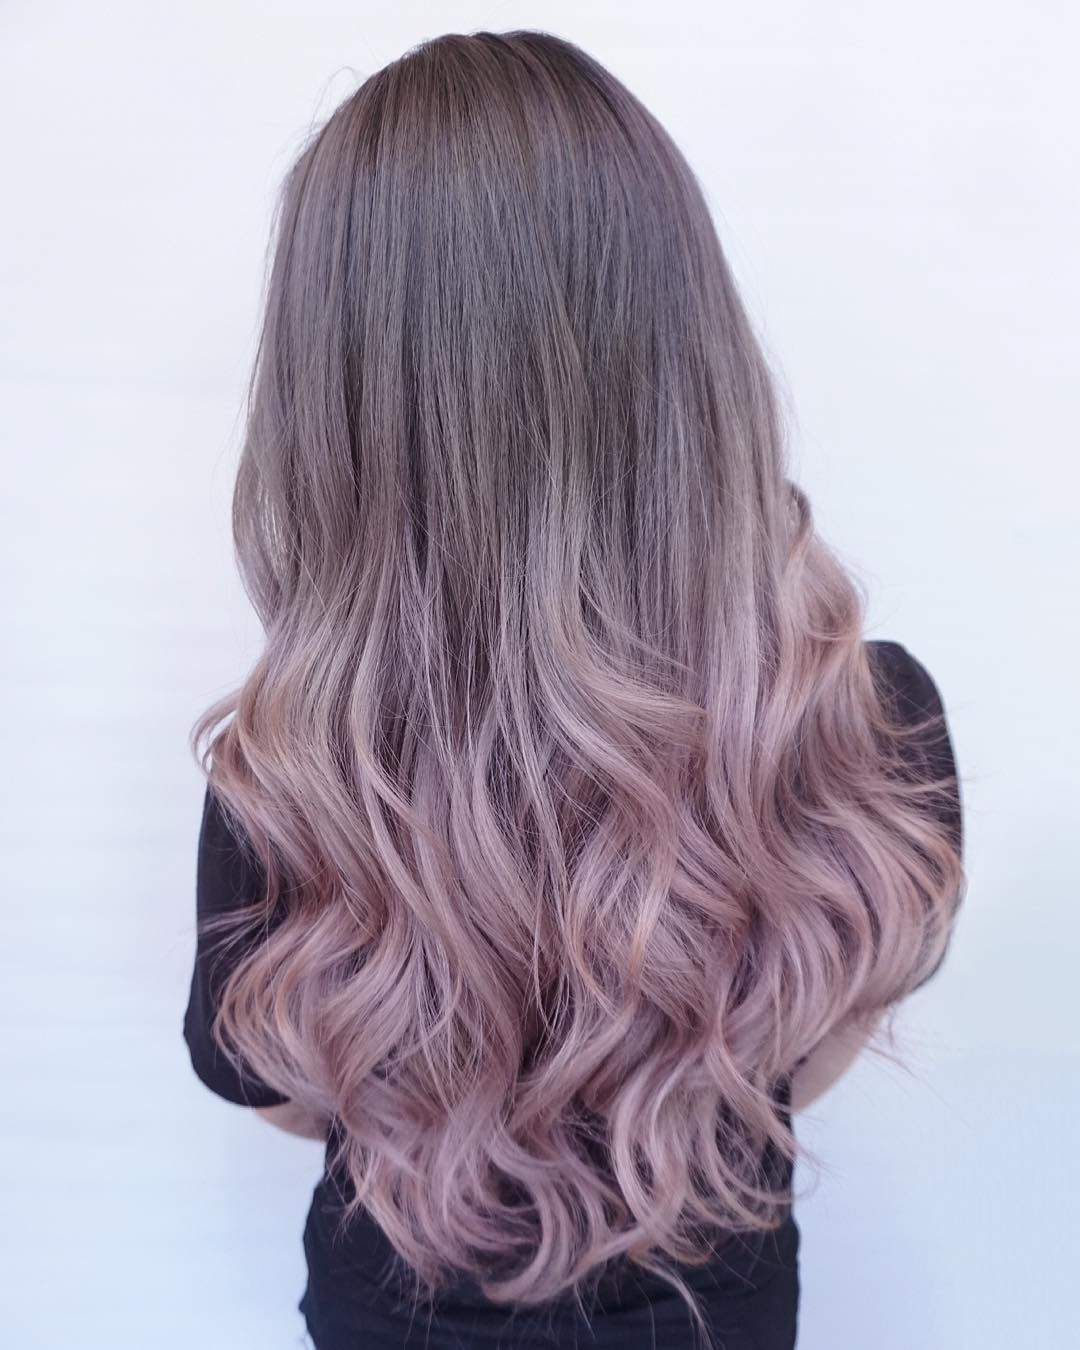 24 Dyed Hairstyles You Need To Try Hair Styles Pink Hair Pink